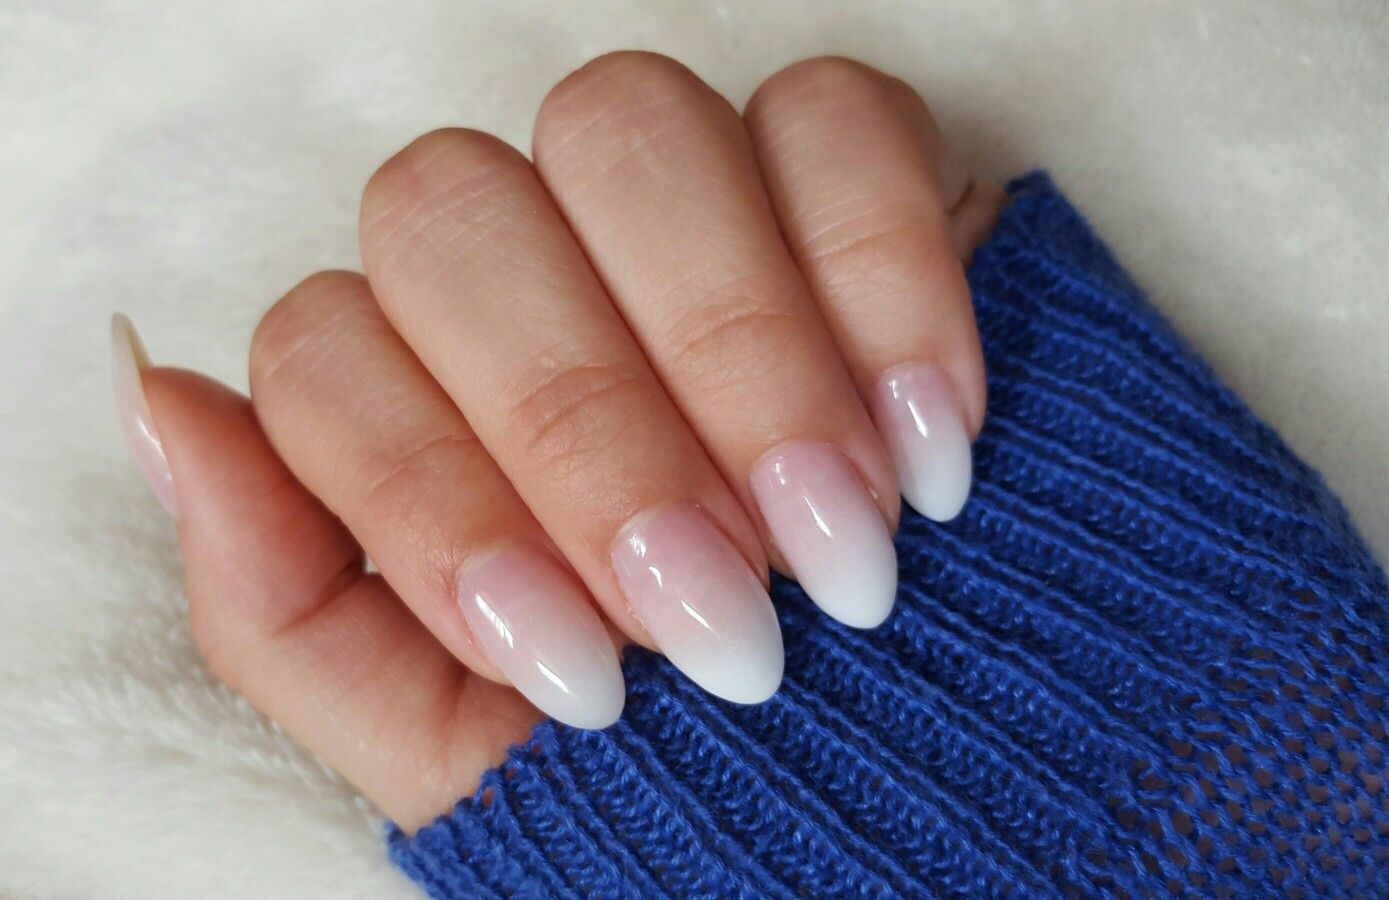 French ombre on almond nail shape | Nails | Pinterest | Almond nails ...